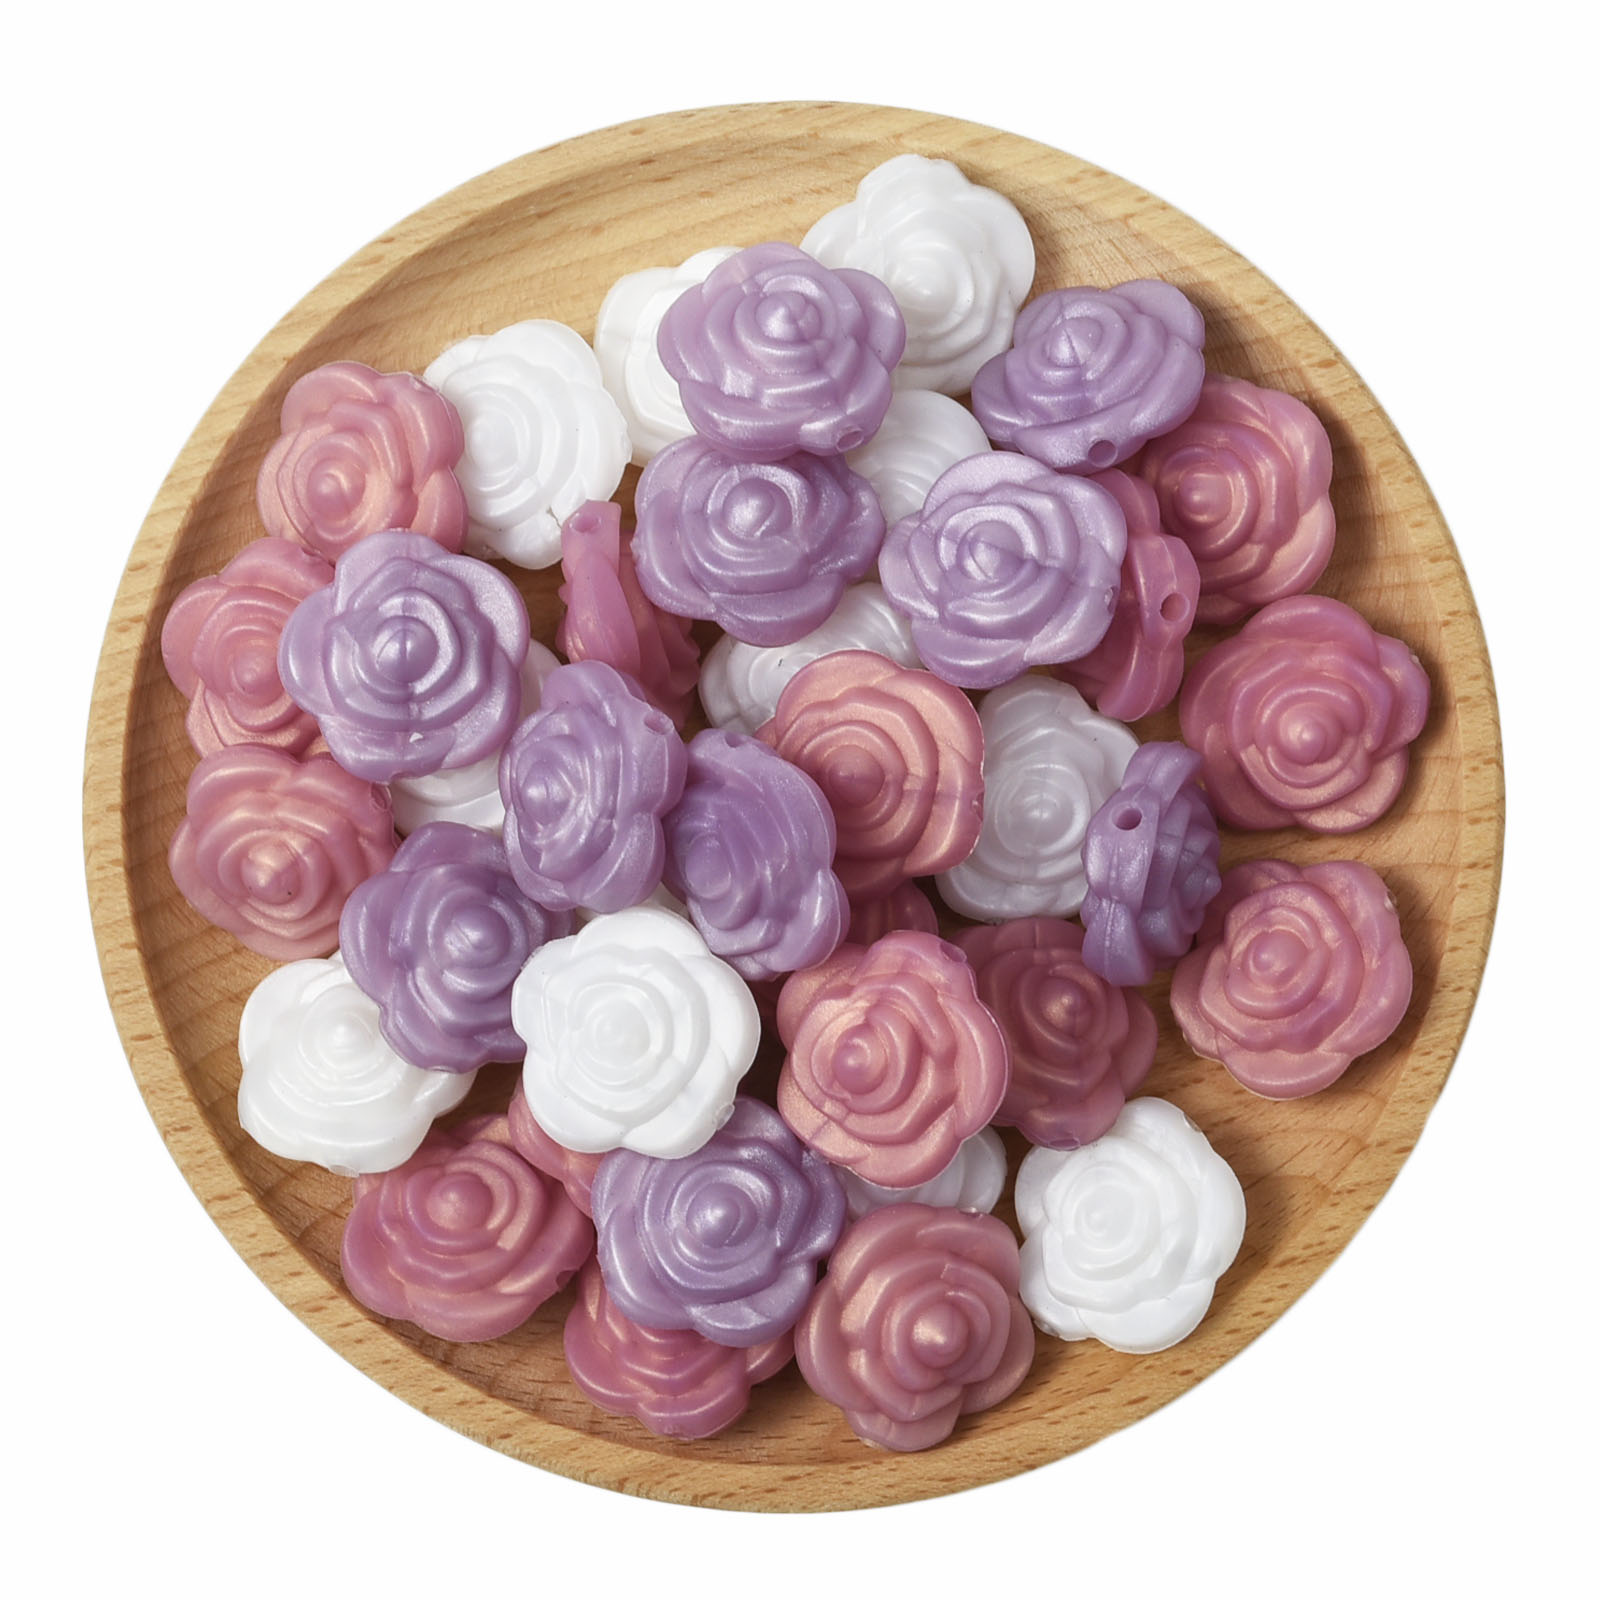 50 PCS 21 MM Mini Flower Silicone Beads For Baby Pacifier Pendant Accessories Food Grade Silicone Ba